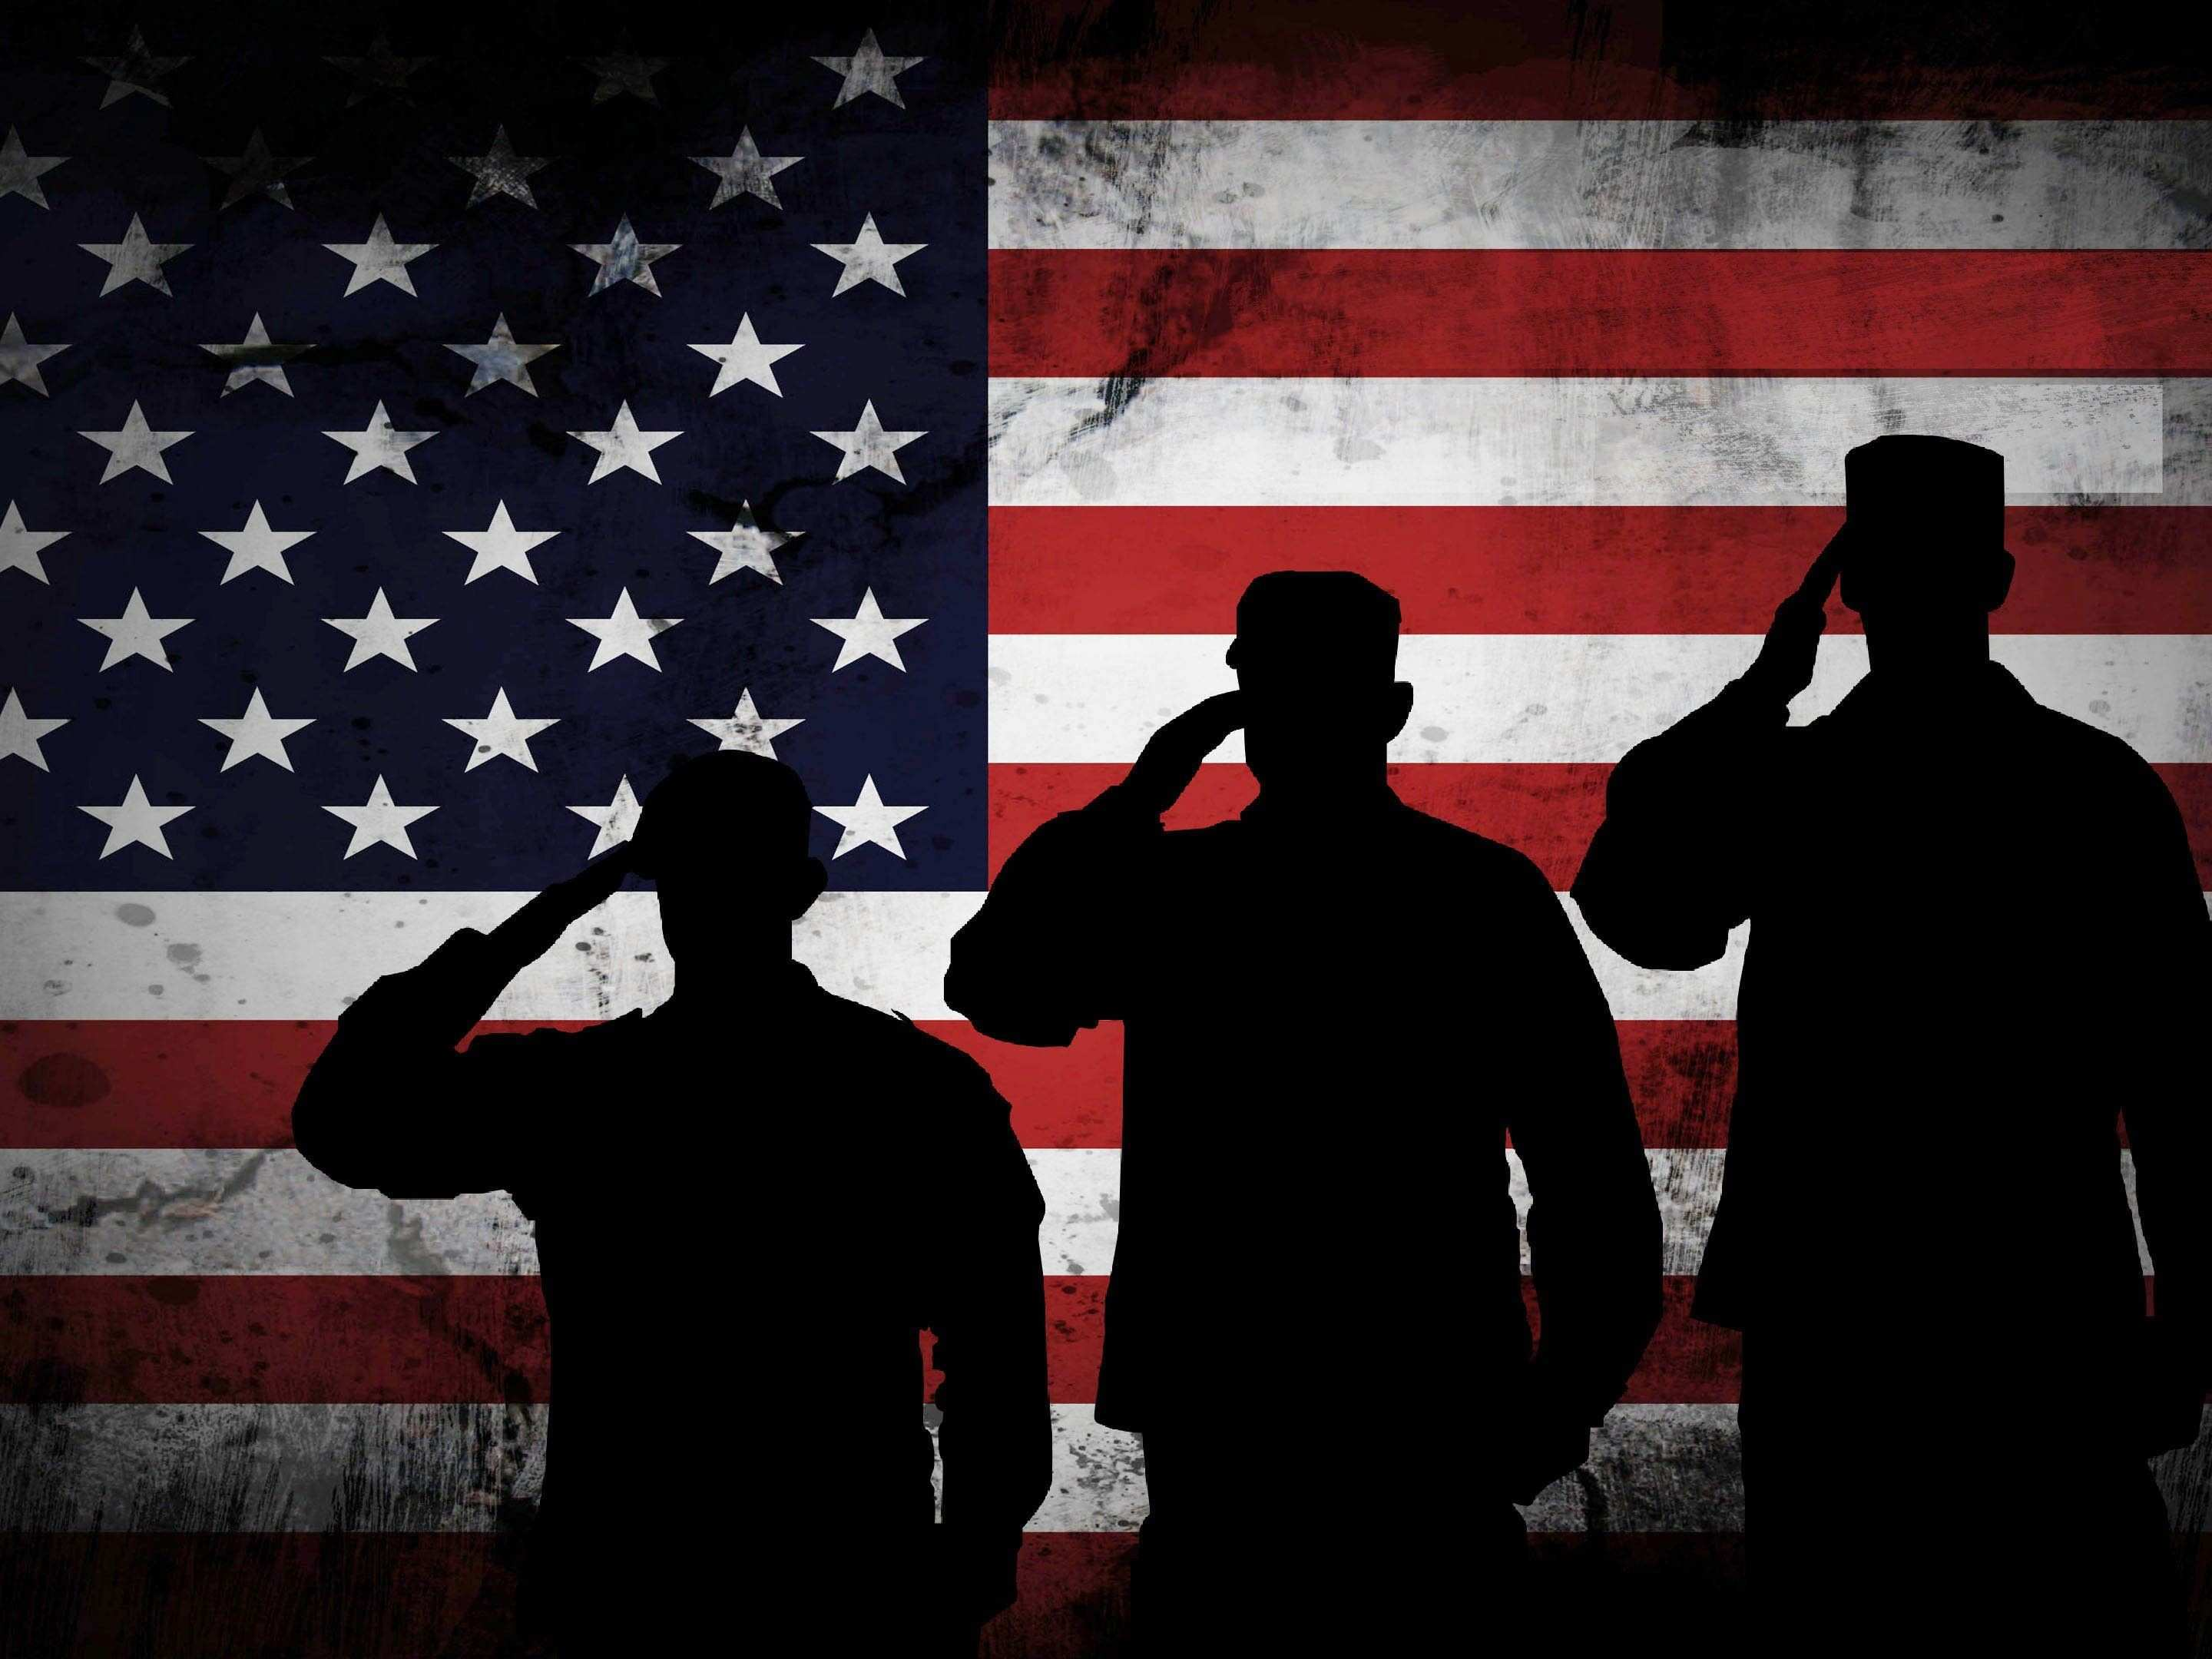 3 US Marines Saluting the American Flag Military Patriotic Army Wall